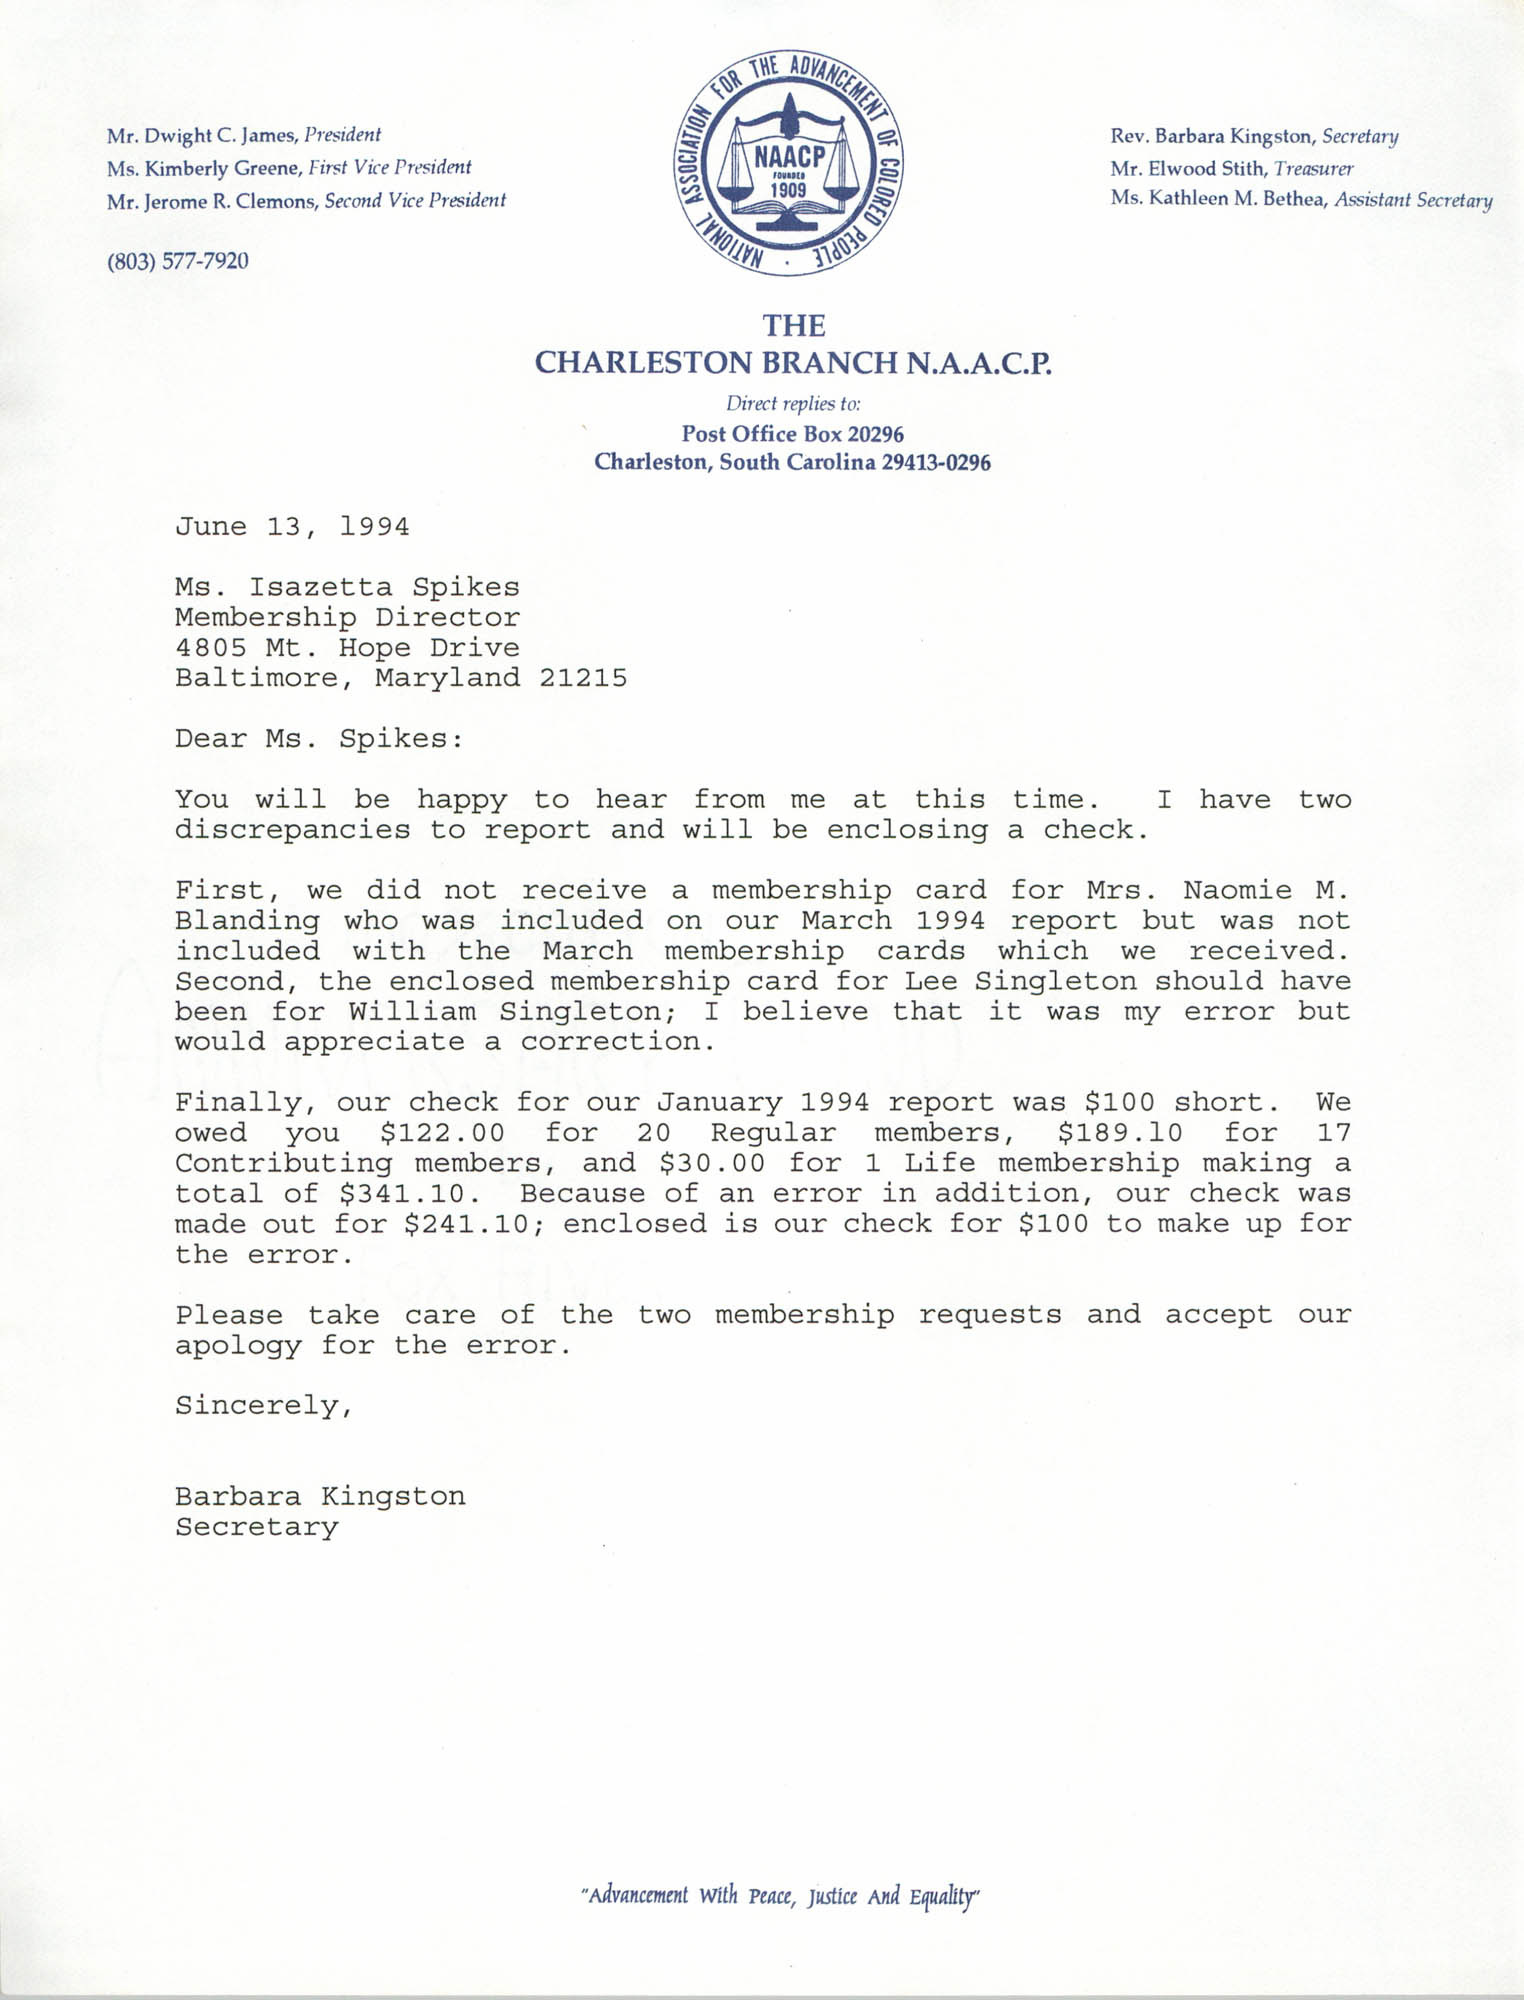 Letter from Barbara Kingston to Isazetta Spikes, June 13, 1994